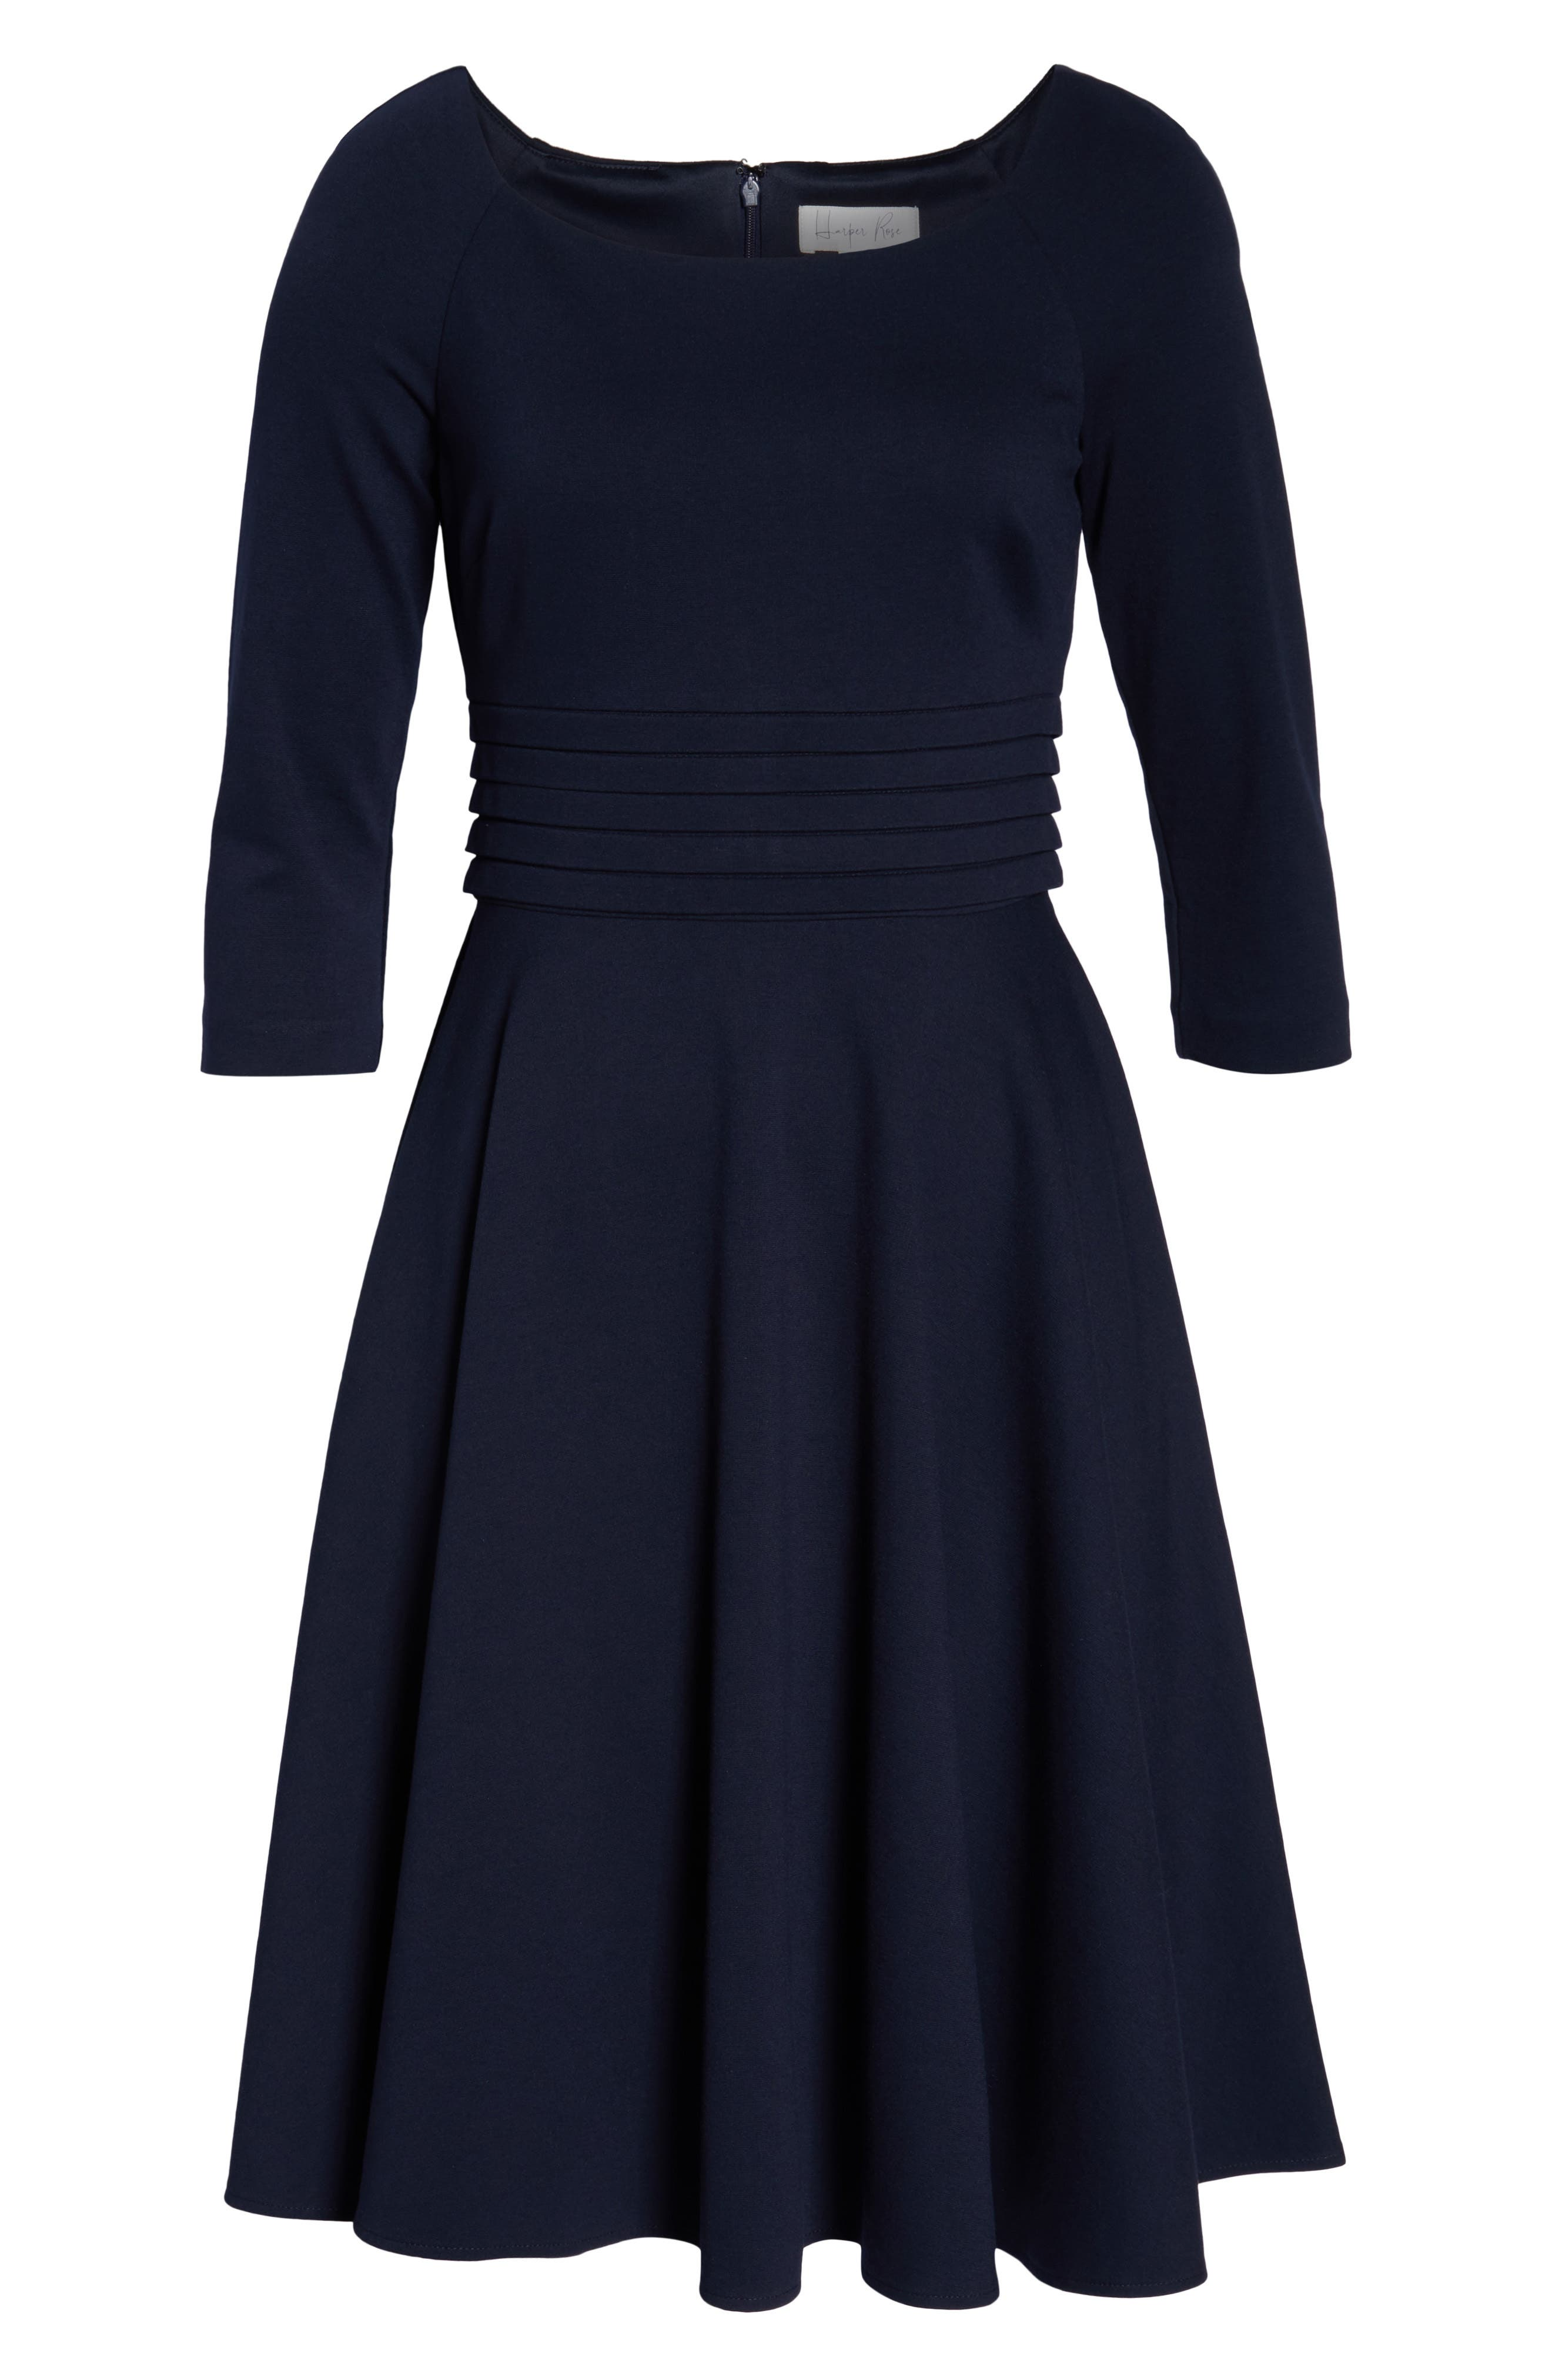 Pleated Waist Fit & Flare Dress,                             Alternate thumbnail 8, color,                             NAVY